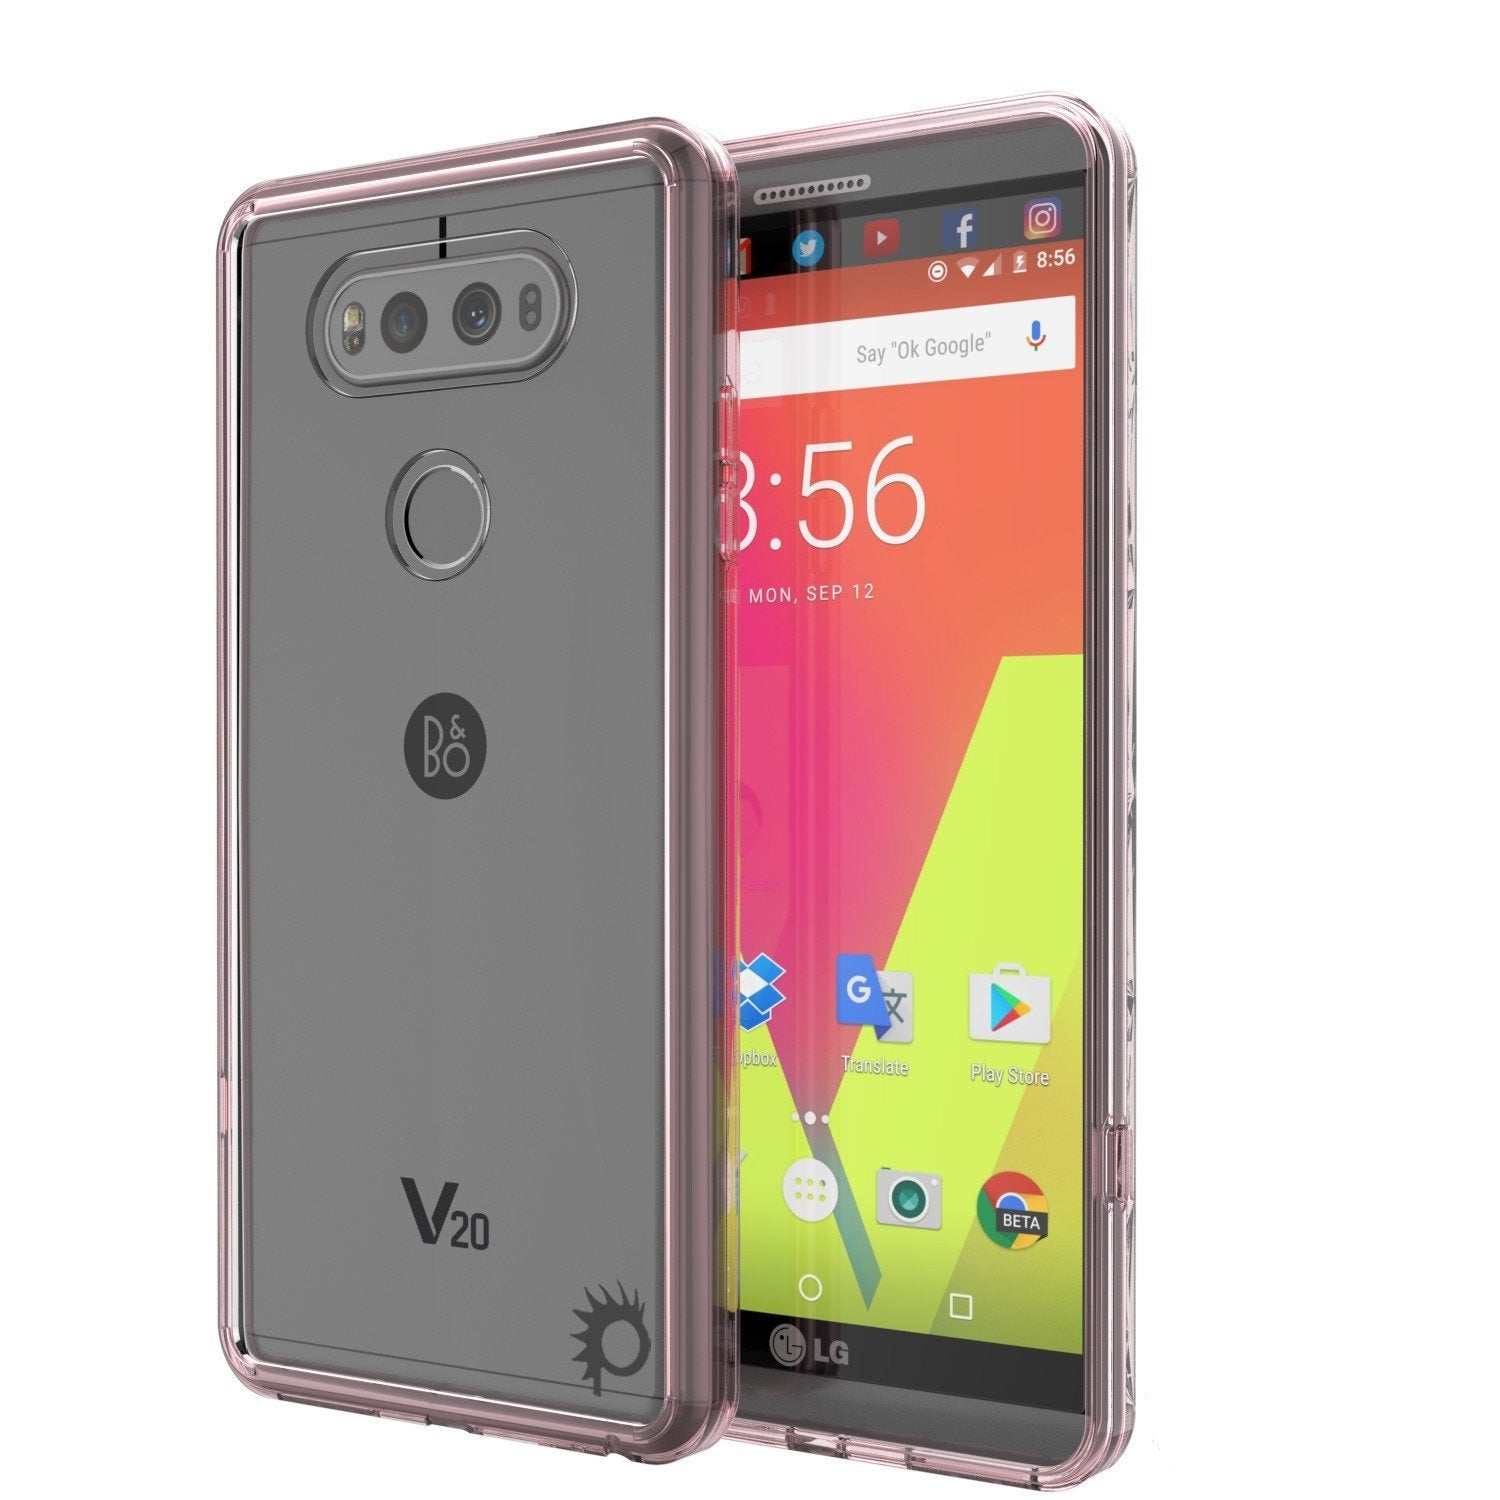 LG v20 Case Punkcase® LUCID 2.0 Crystal Pink Series w/ PUNK SHIELD Glass Screen Protector | Ultra Fit